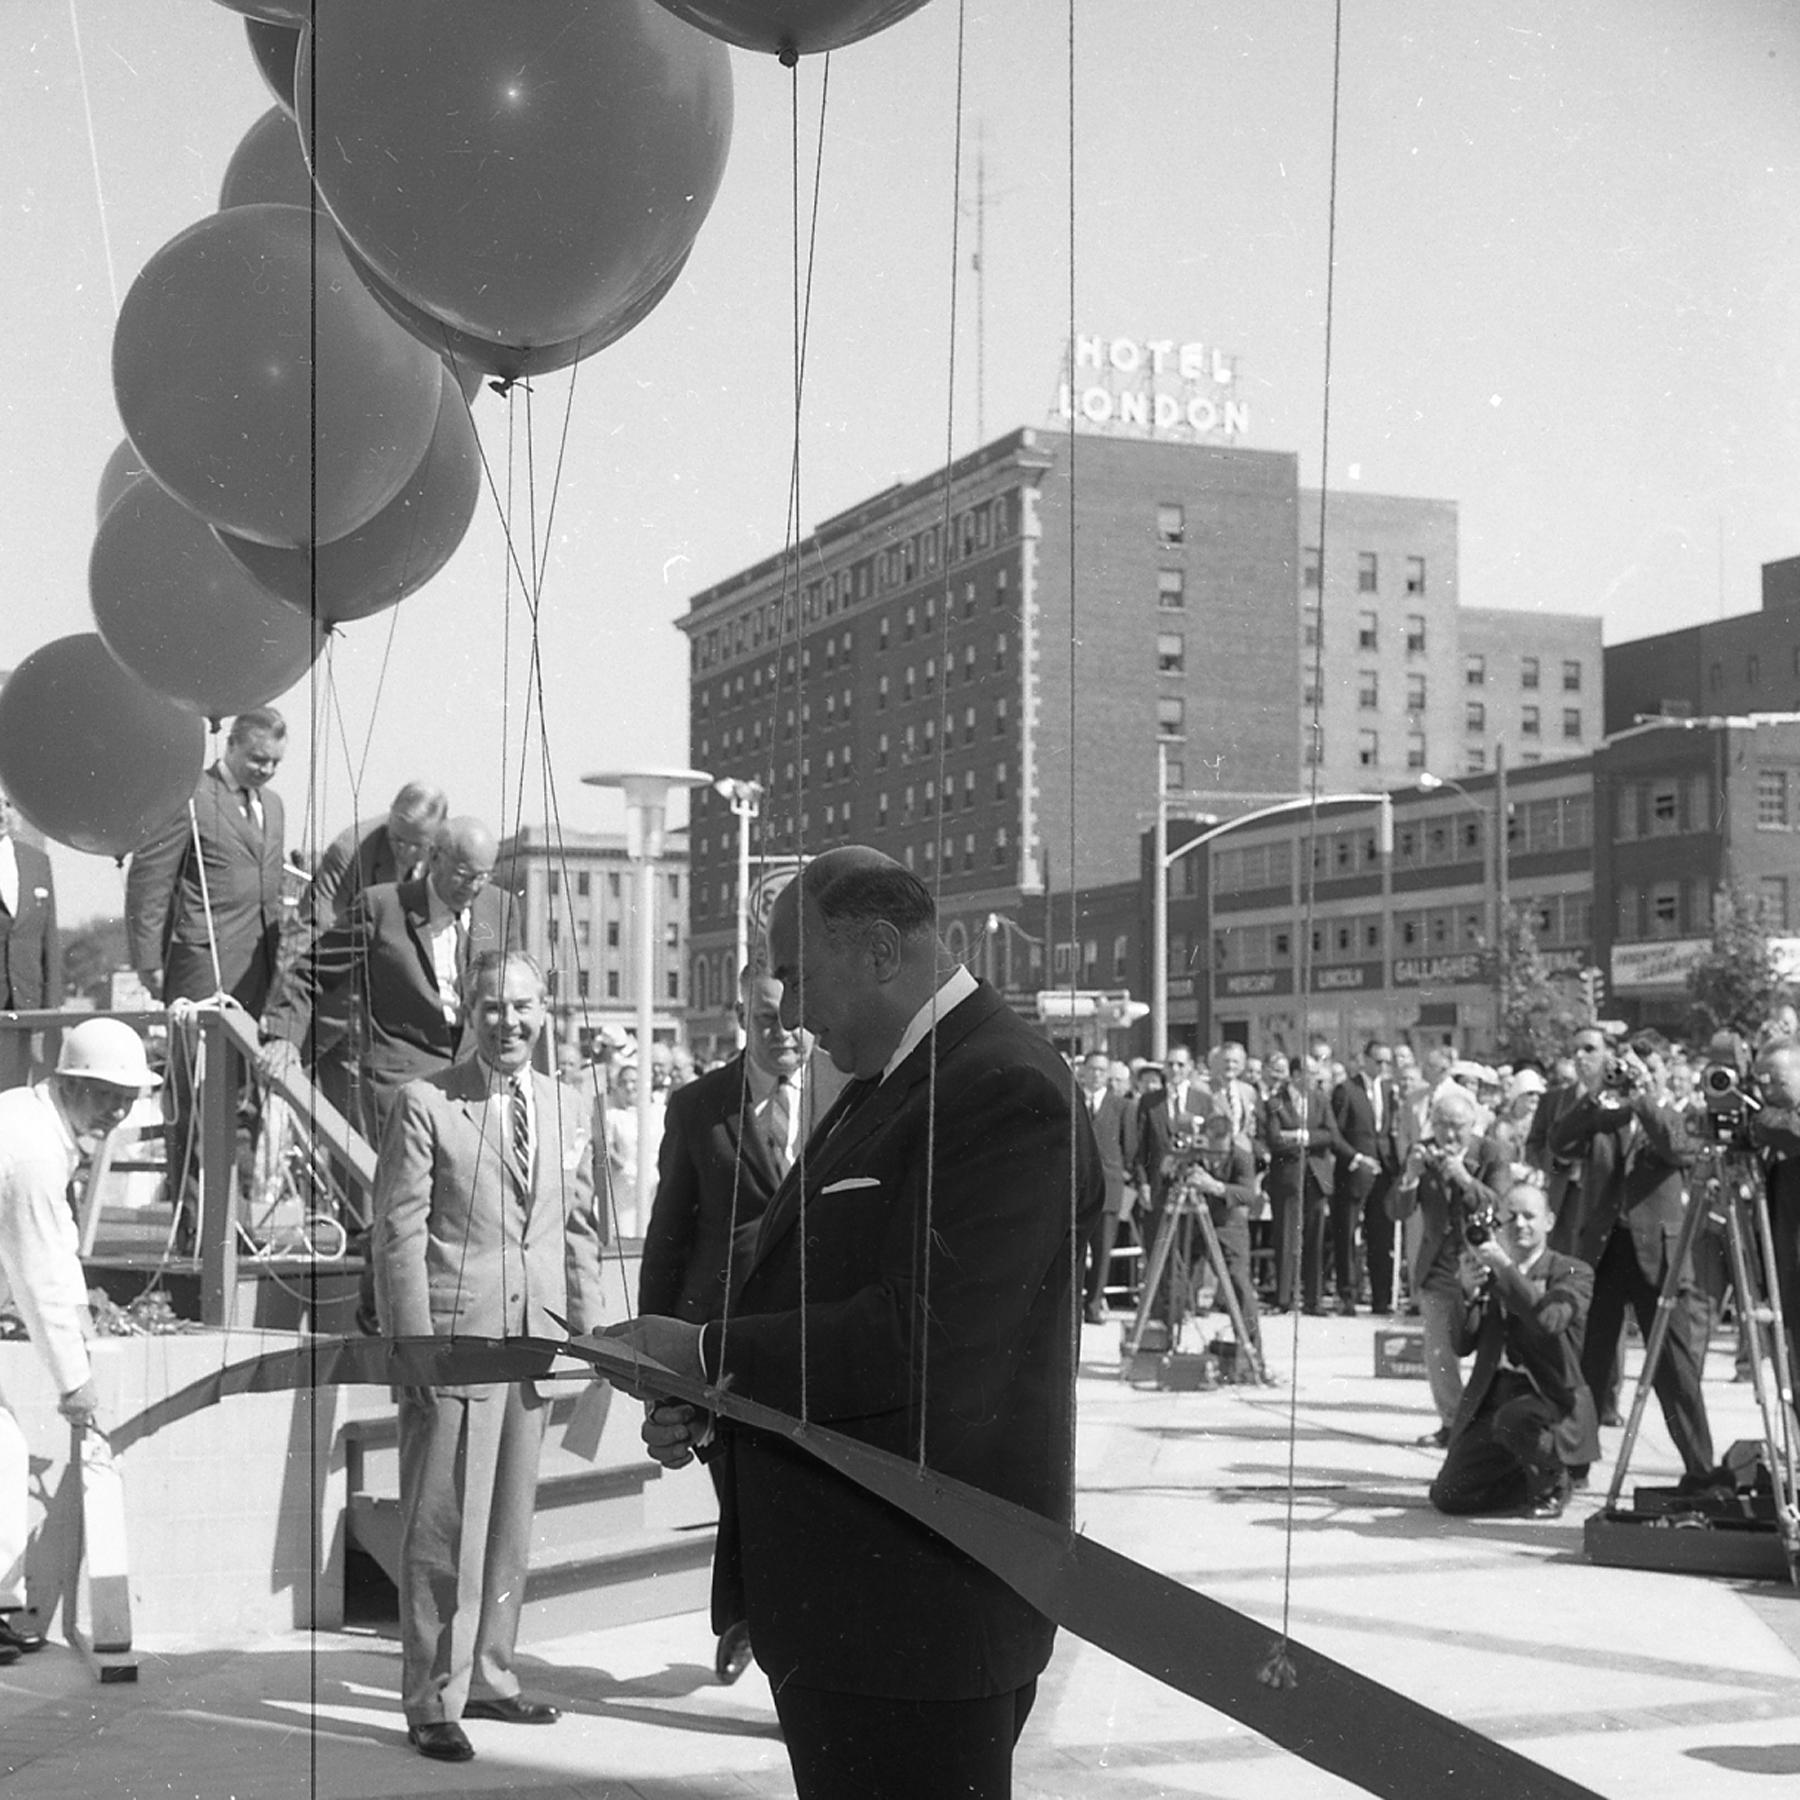 "The late Victor Aziz had his camera ready when the old Wellington Square mall had its ribbon-cutting ceremony on Aug.10, 1960 at 10:30 a.m. ""Very big deal … not sure who the ribbon cutter is. Must be a mayor or mall owner,"" says his son (working from the image, not the negative details.) So —who knows the ID of the big man channeling Edward Scissorhands. Usual prizes available via LondonFuse."